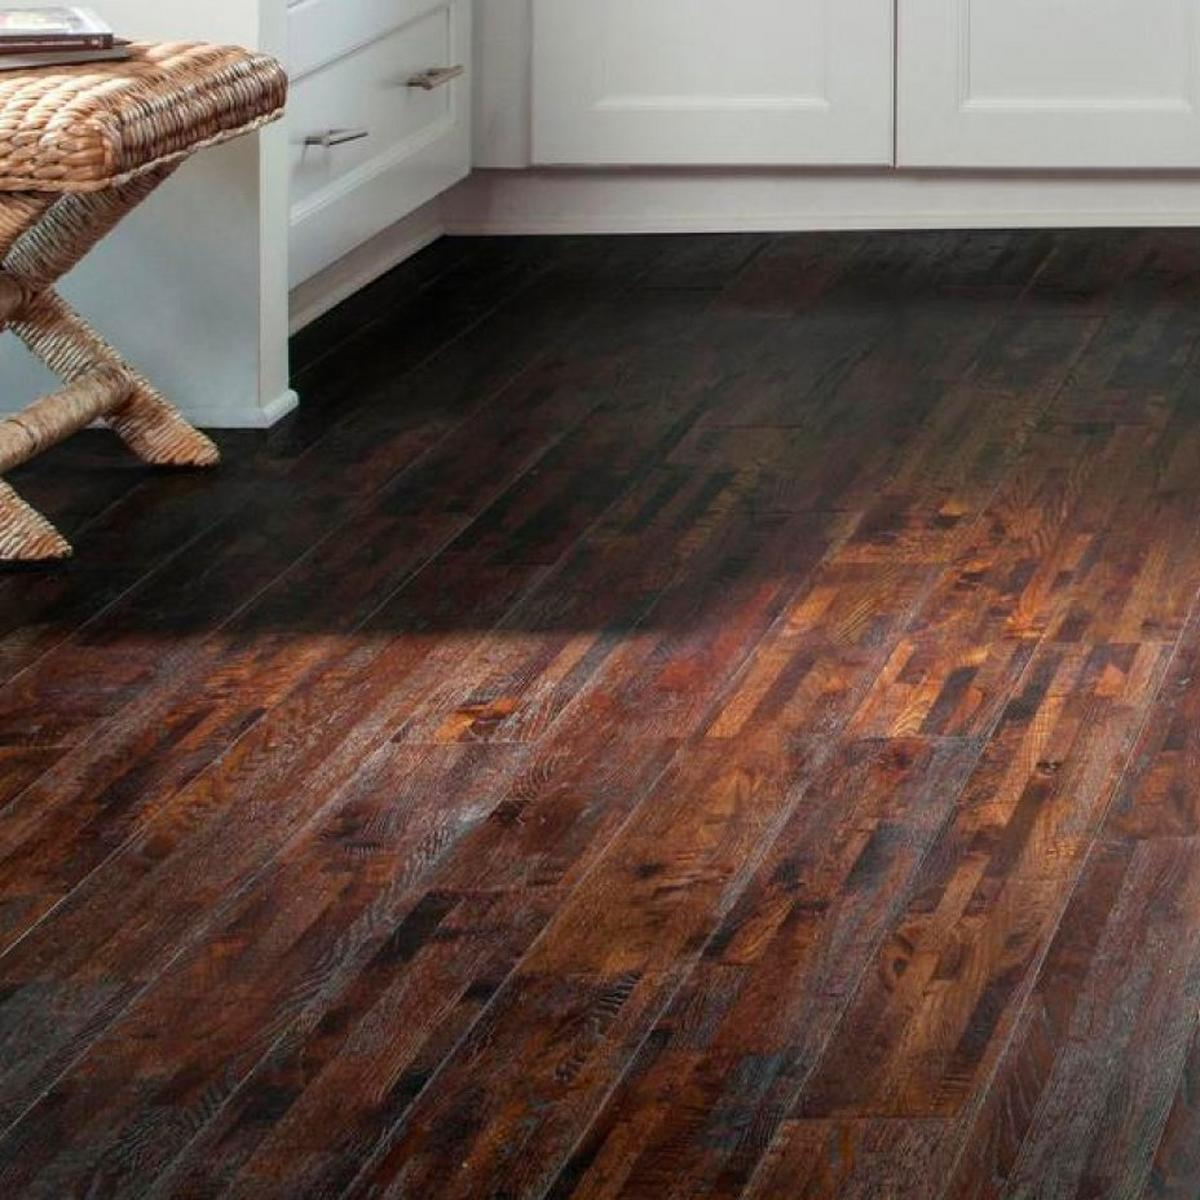 Wood Floor Colors Hardwood Floors And Wood Flooring: Floor & Decor